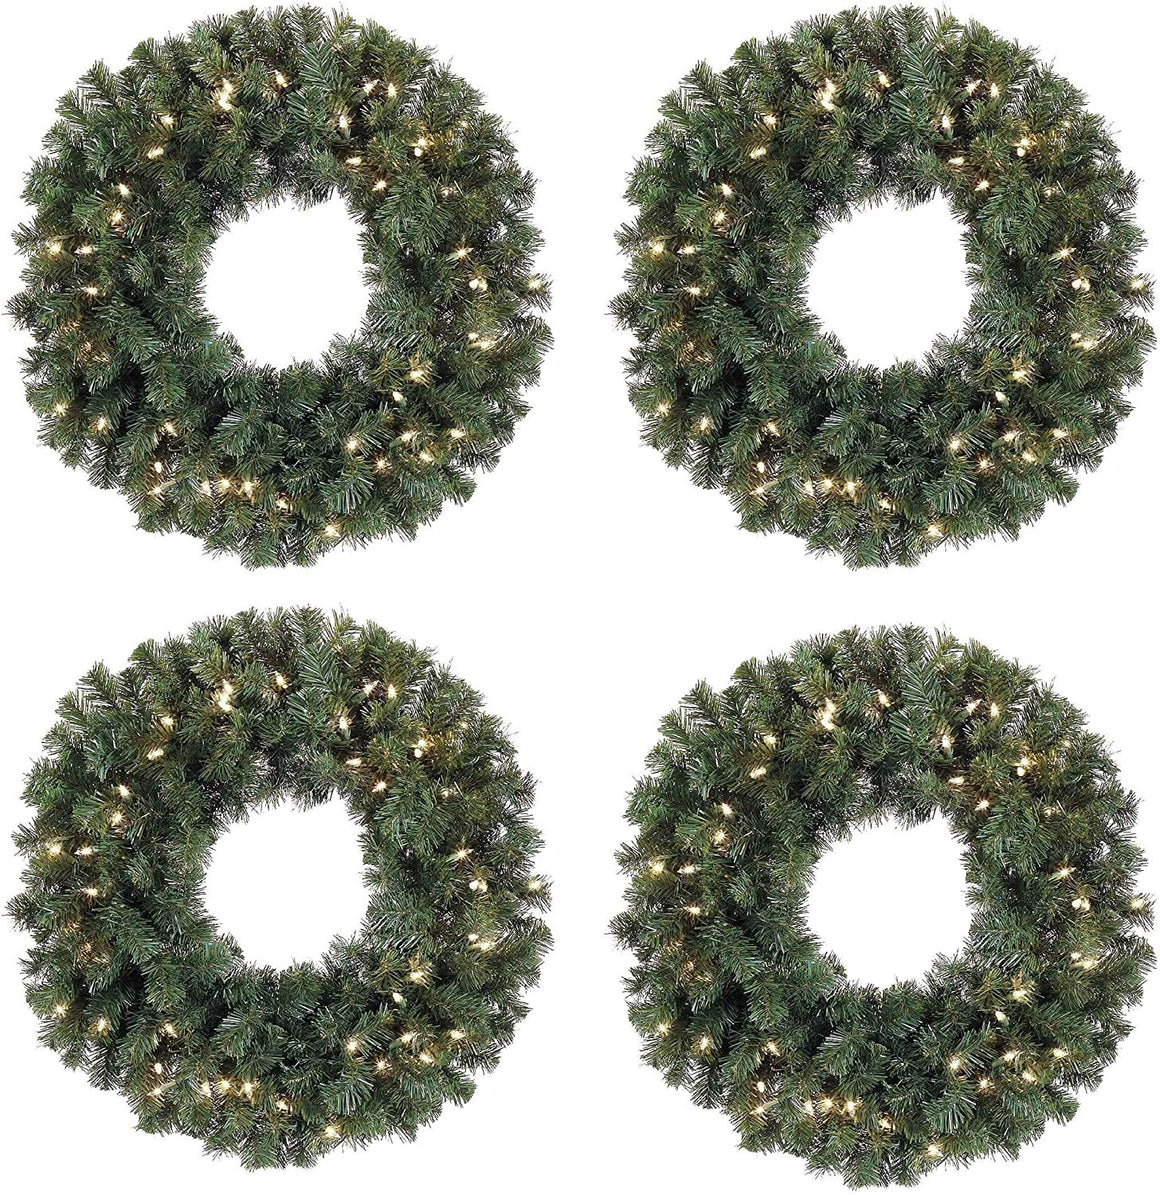 Set of 4, 24 Inch Battery Operated Pre-lit Christmas Pine Wreaths with 50 Led Clear Lights Per Wreath and Timers, Indoor/Outdoor